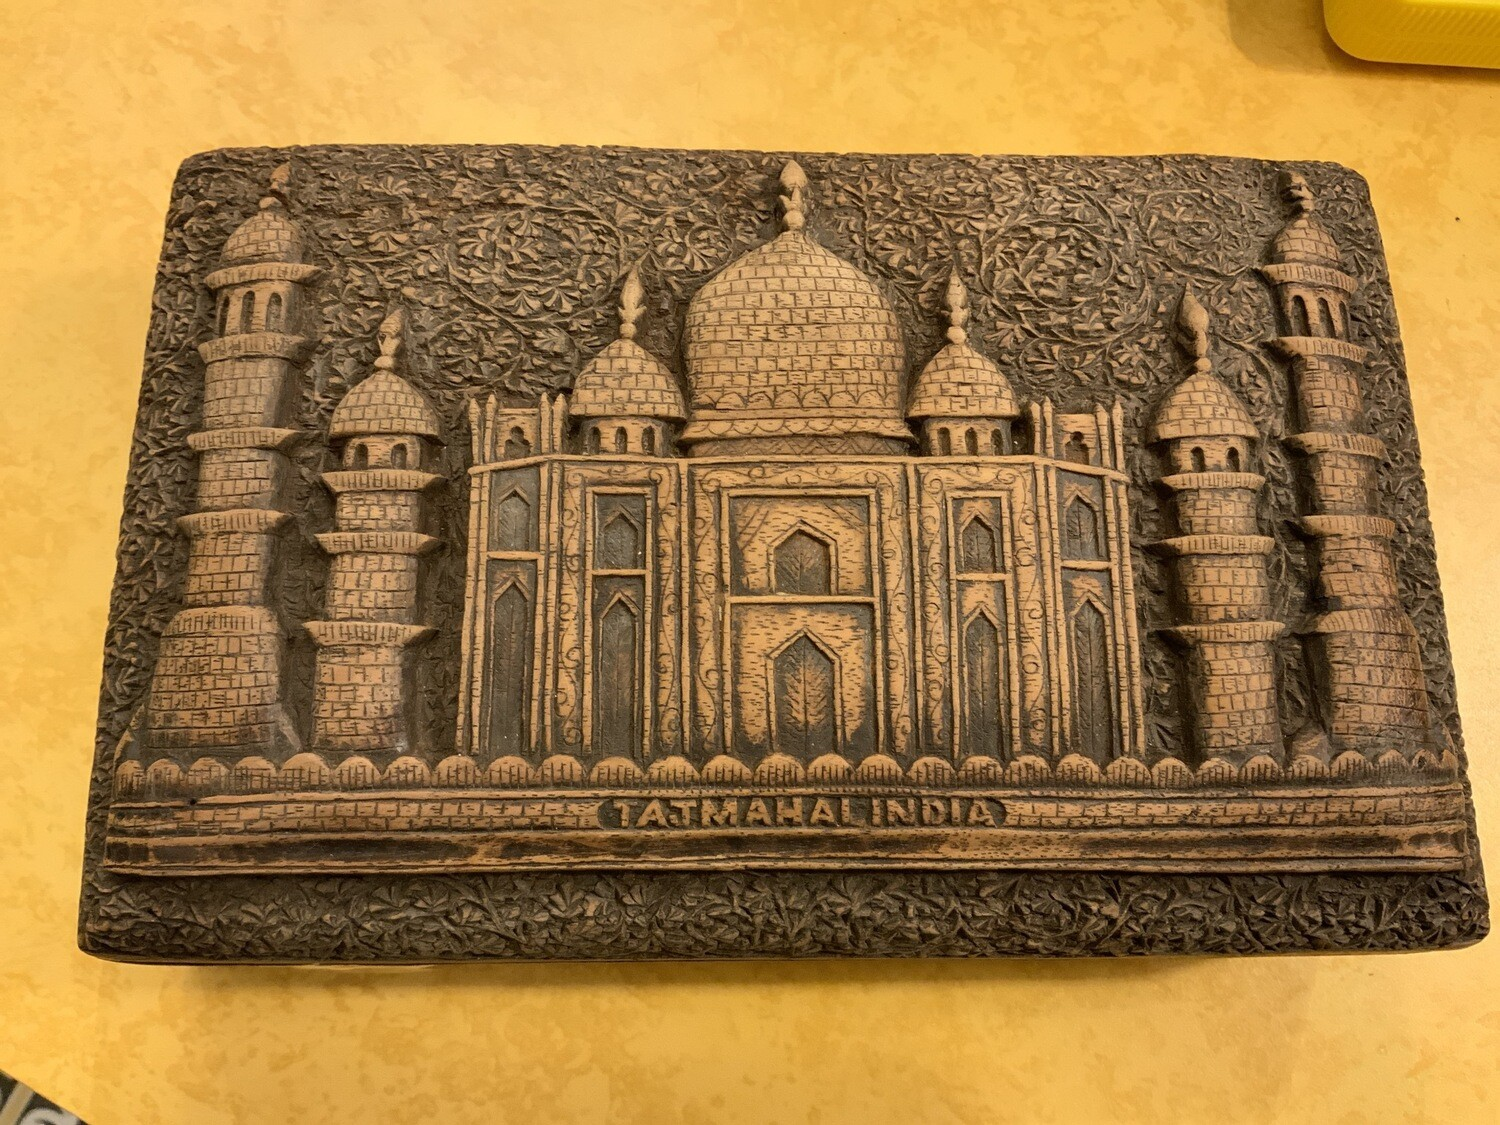 Indian Carved Cigarette Box - Probably 1930's